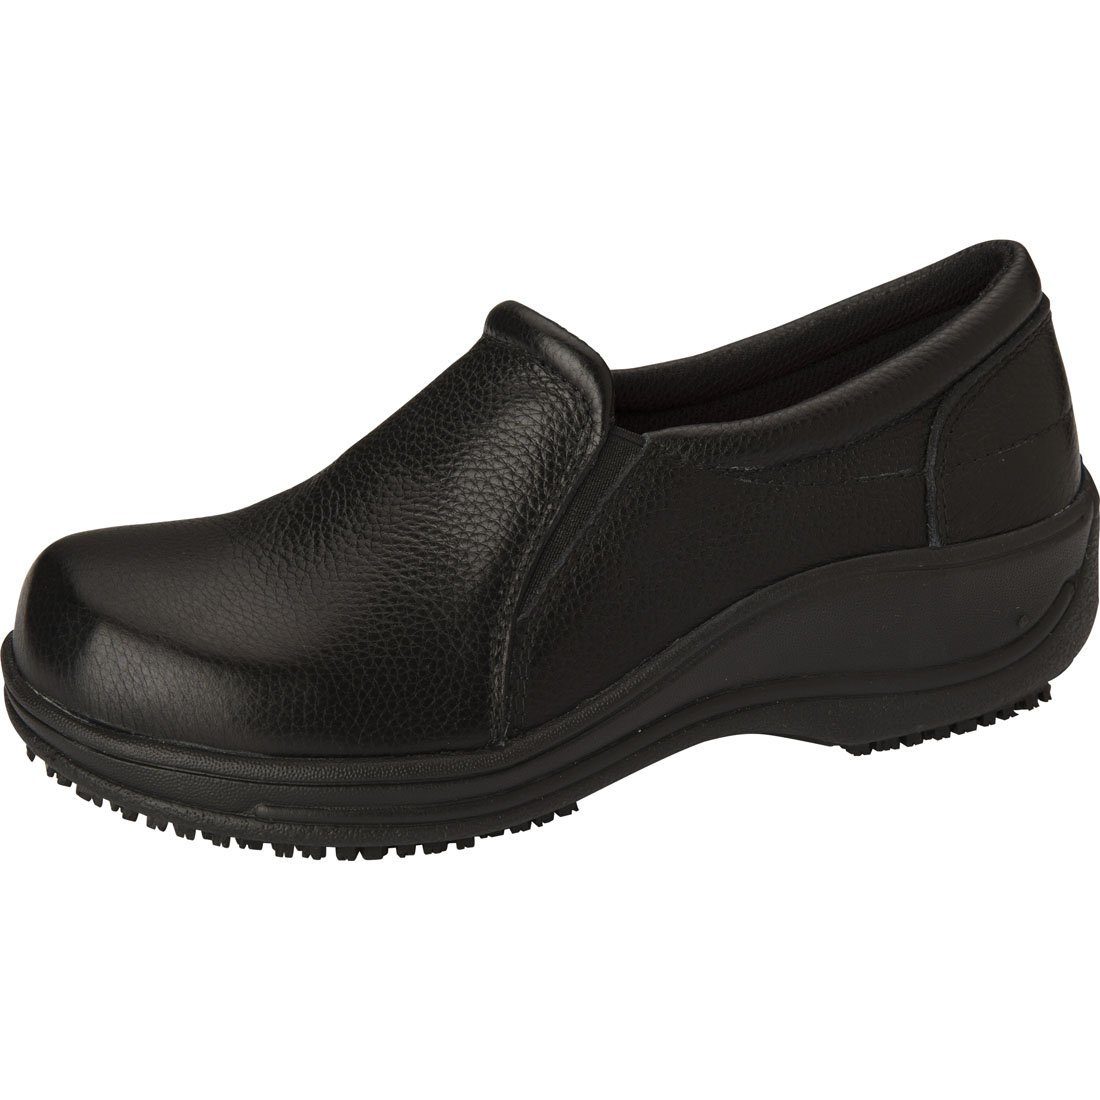 Anywear ''SAVVY' Leather Slip On' Black 7H by Anywear